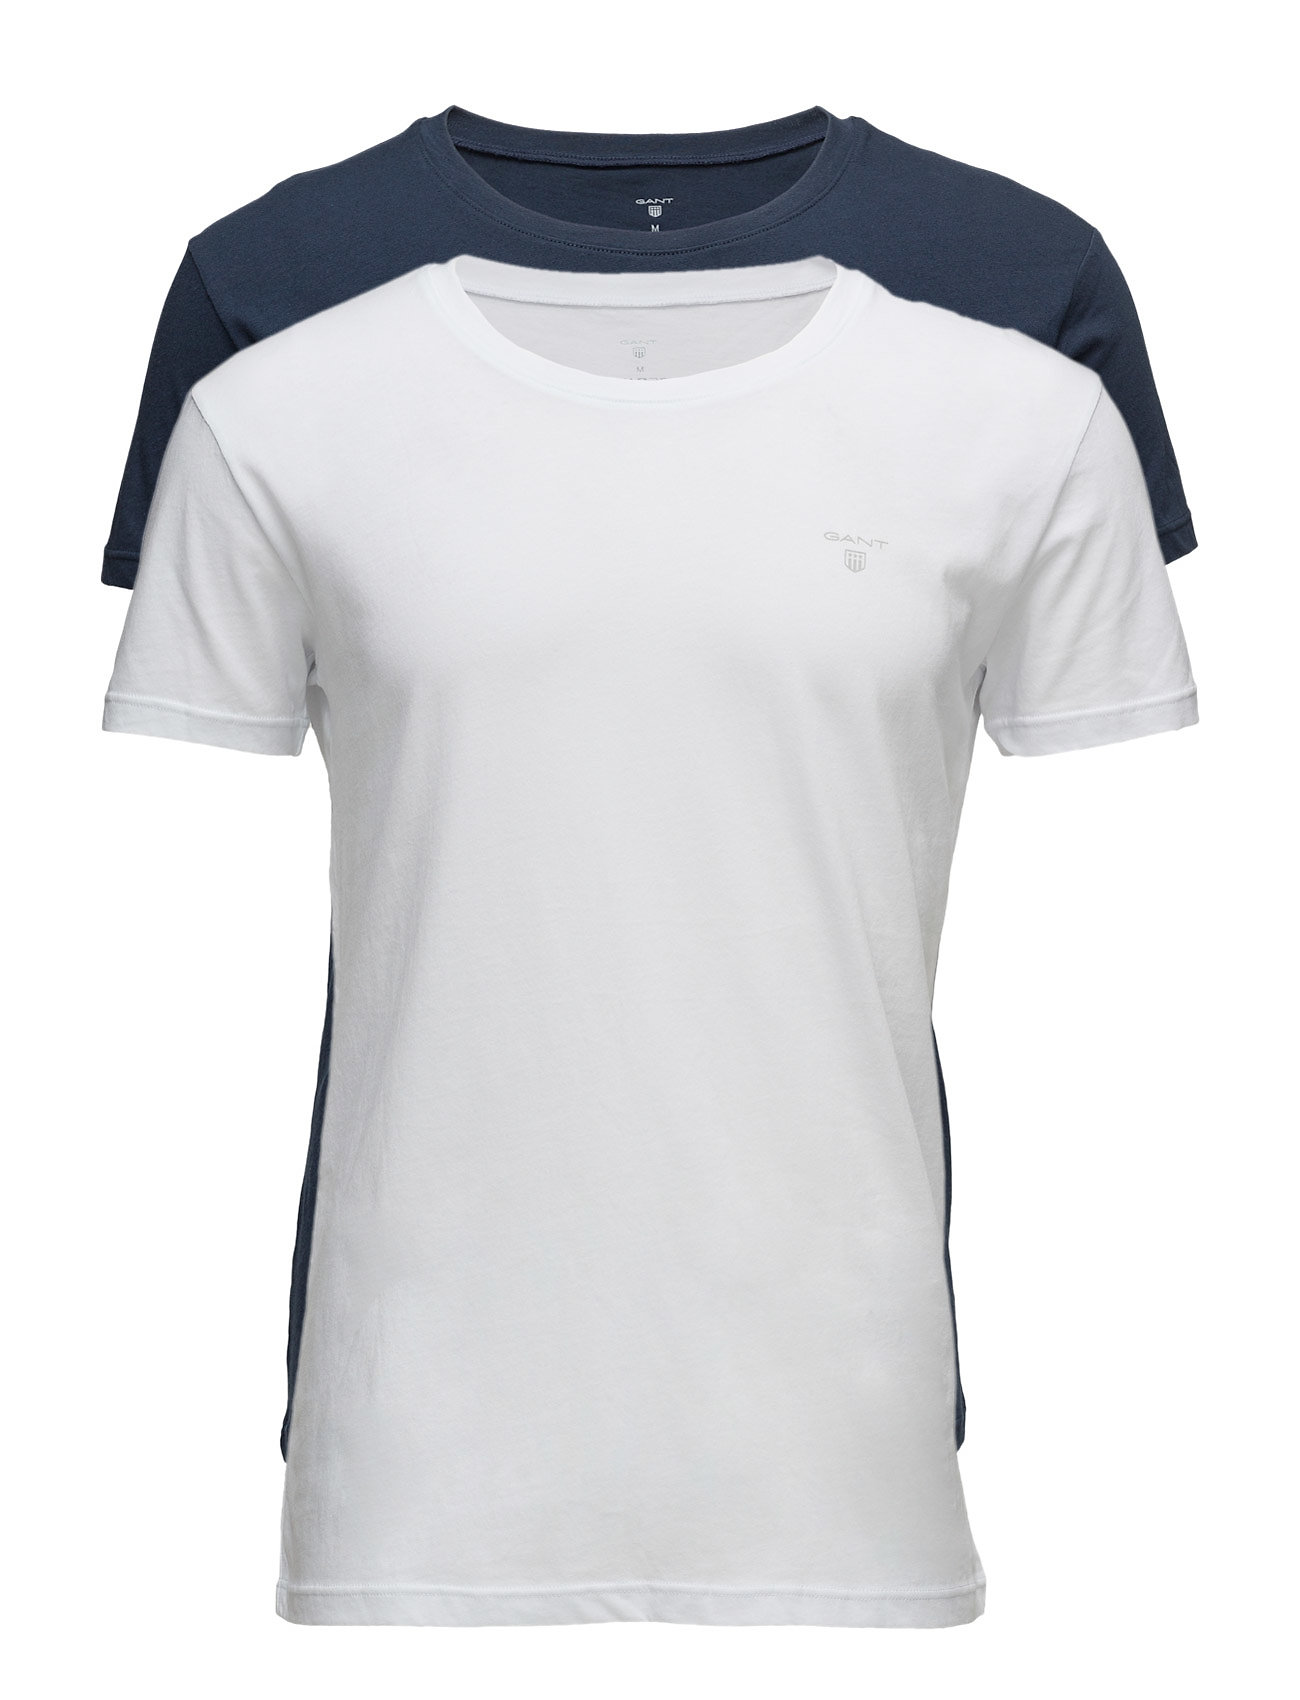 GANT BASIC 2-PACK CREW NECK T-SHIRT